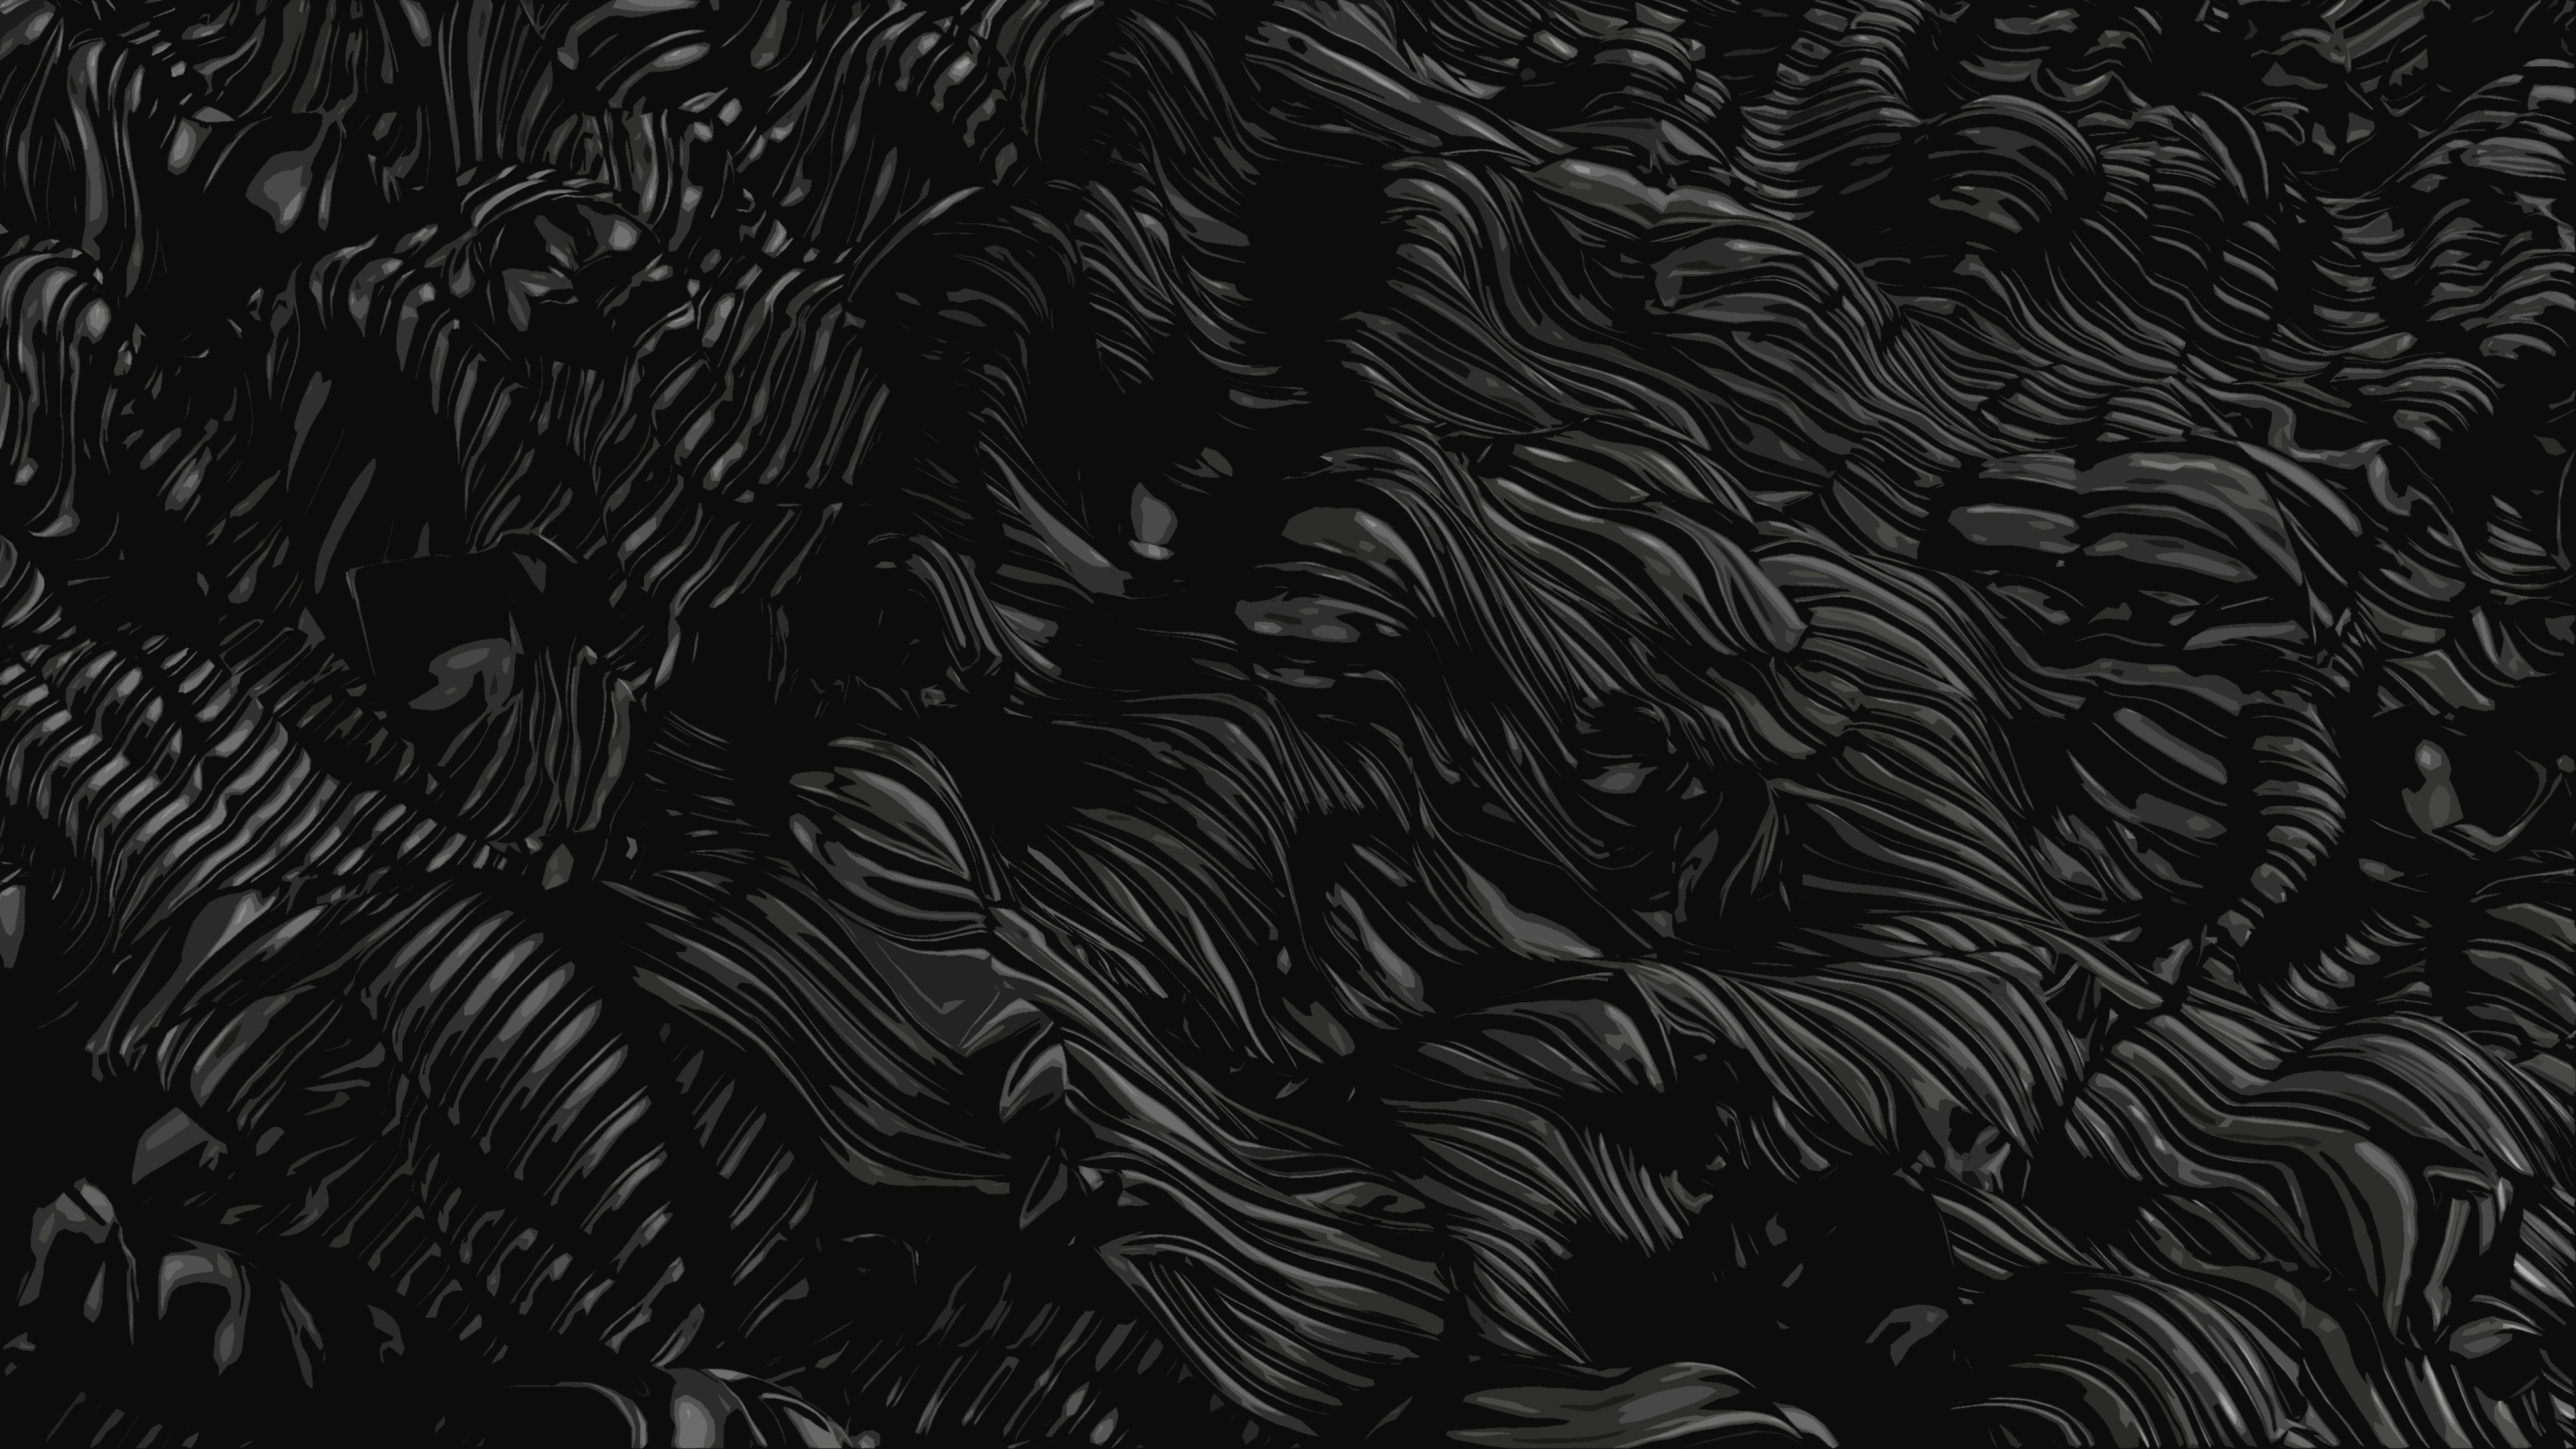 5120x2880 Black Abstract Dark Poster Oil 5k Wallpaper Hd Abstract 4k Wallpapers Images Photos And Background